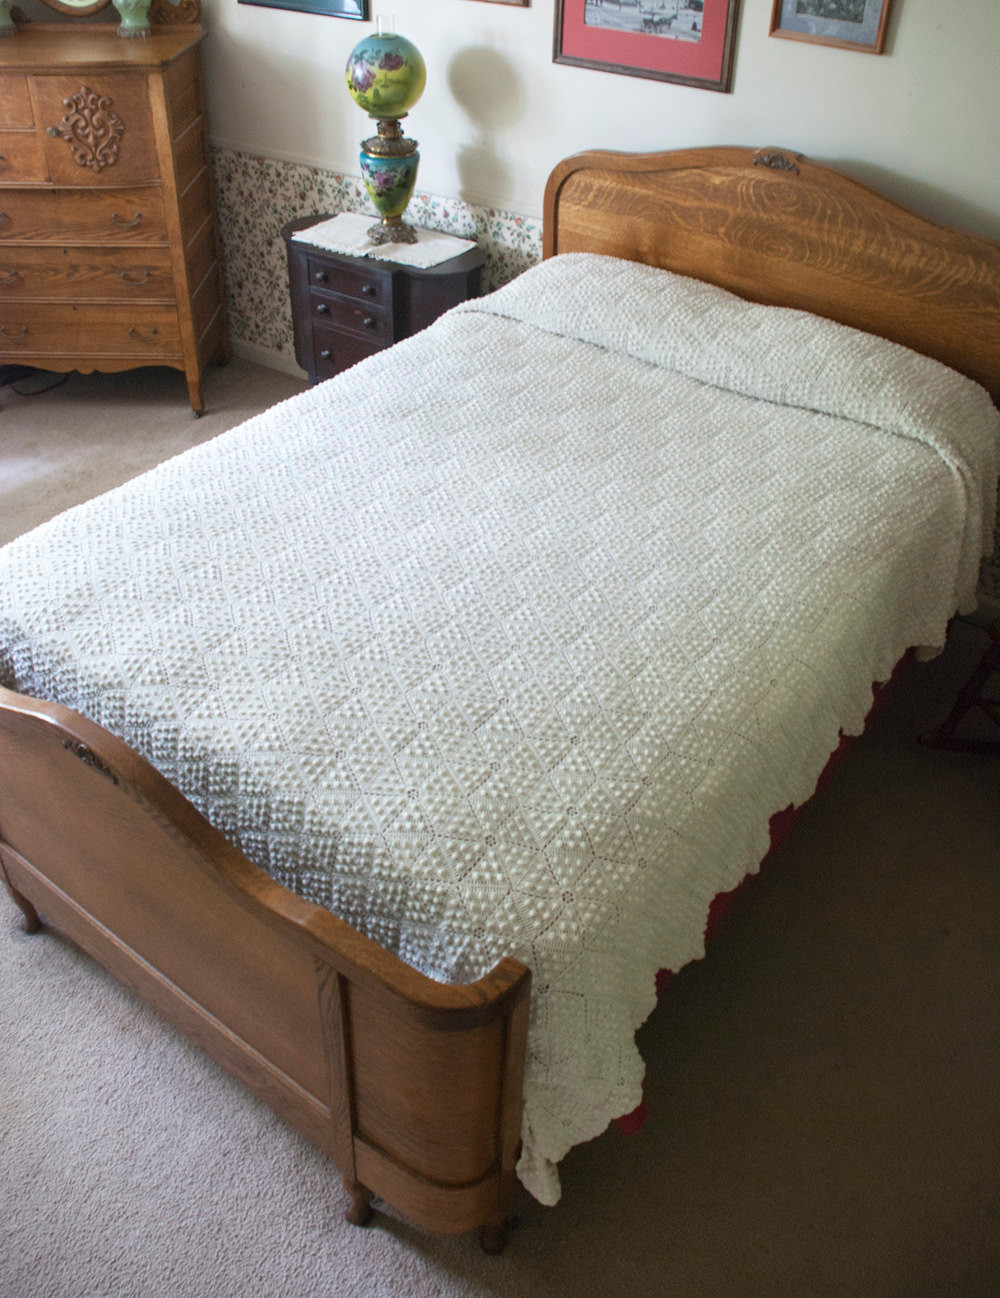 Crochet Bedspread Beautiful Vintage Crochet Bedspread Handmade Coverlet Full Size Of Unique 38 Pics Crochet Bedspread